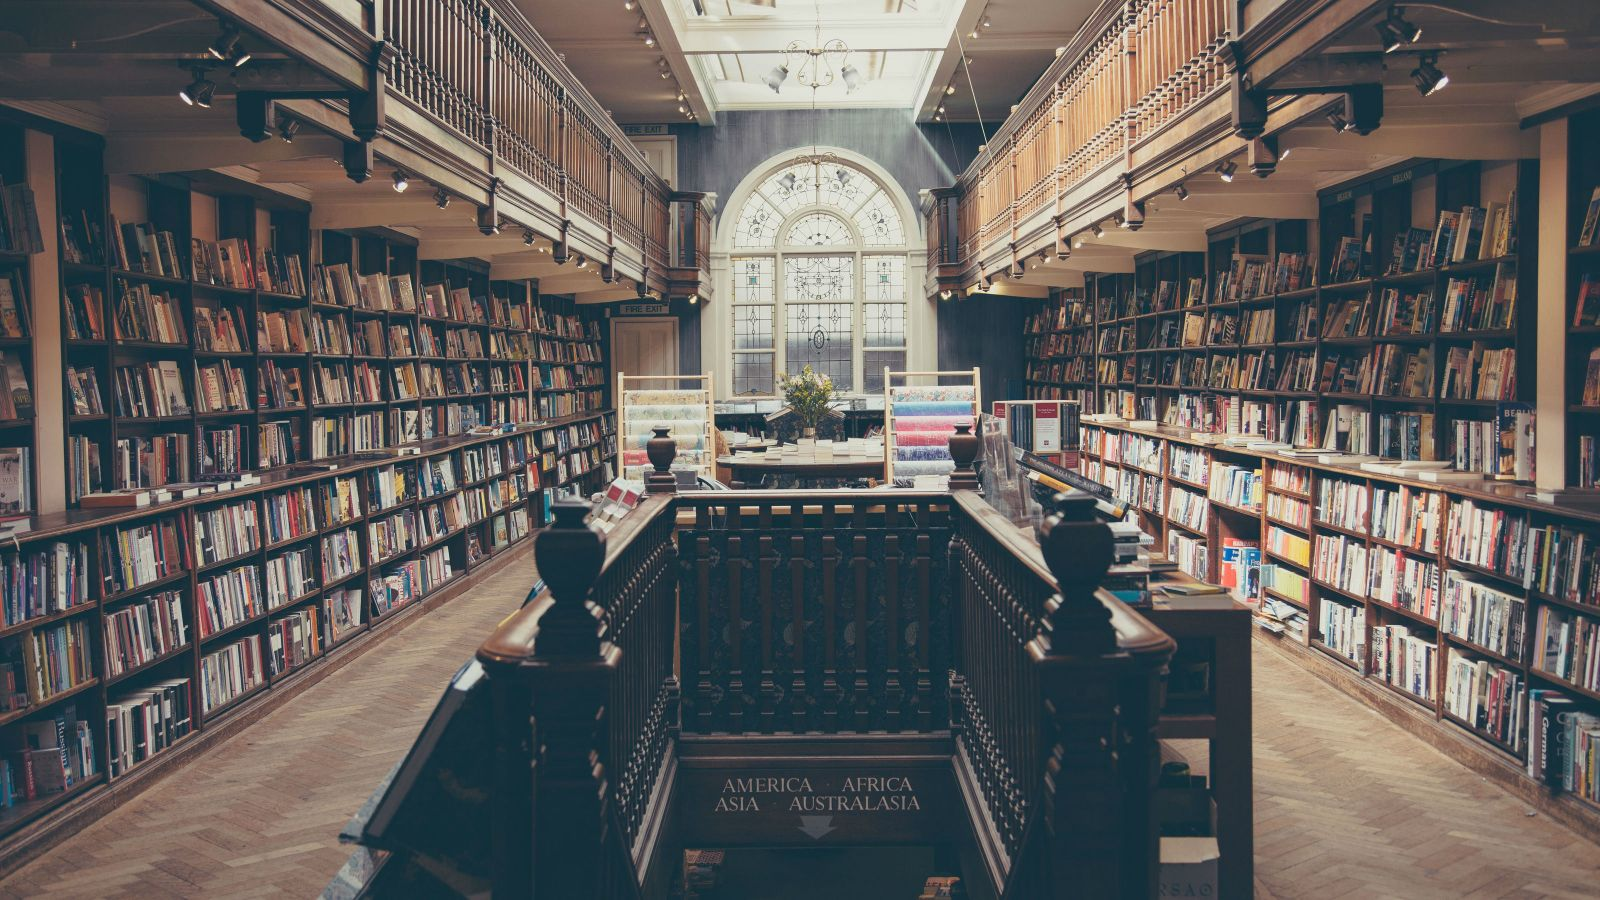 A grand old library with a staircase and an etched arch window.